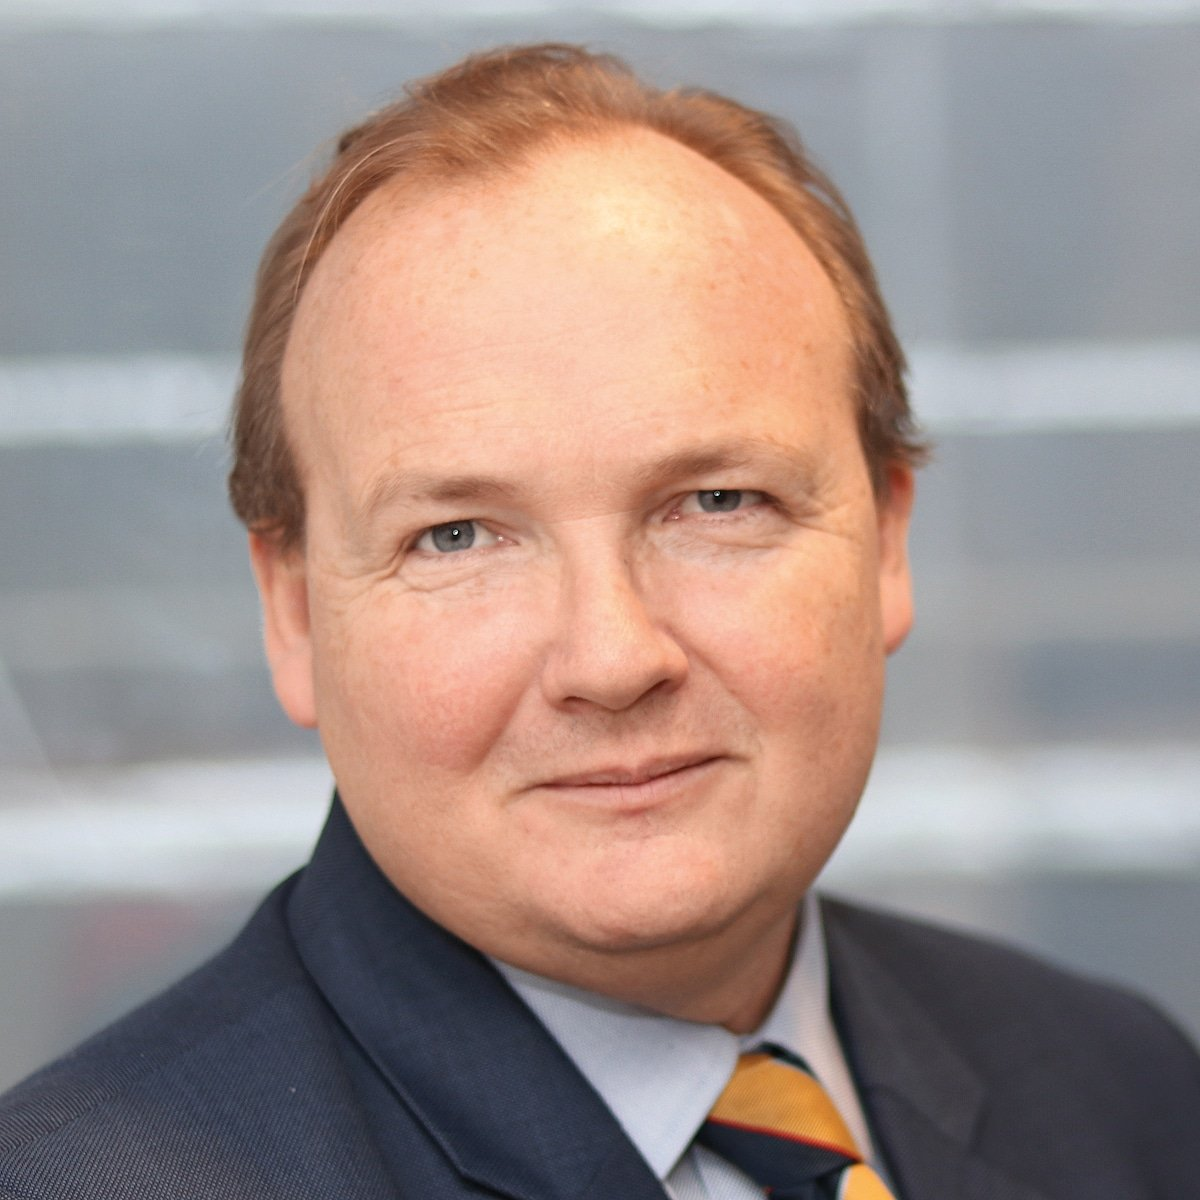 Mark Beer international lawyer relations Middle East China expert speaker at Great British Speakers